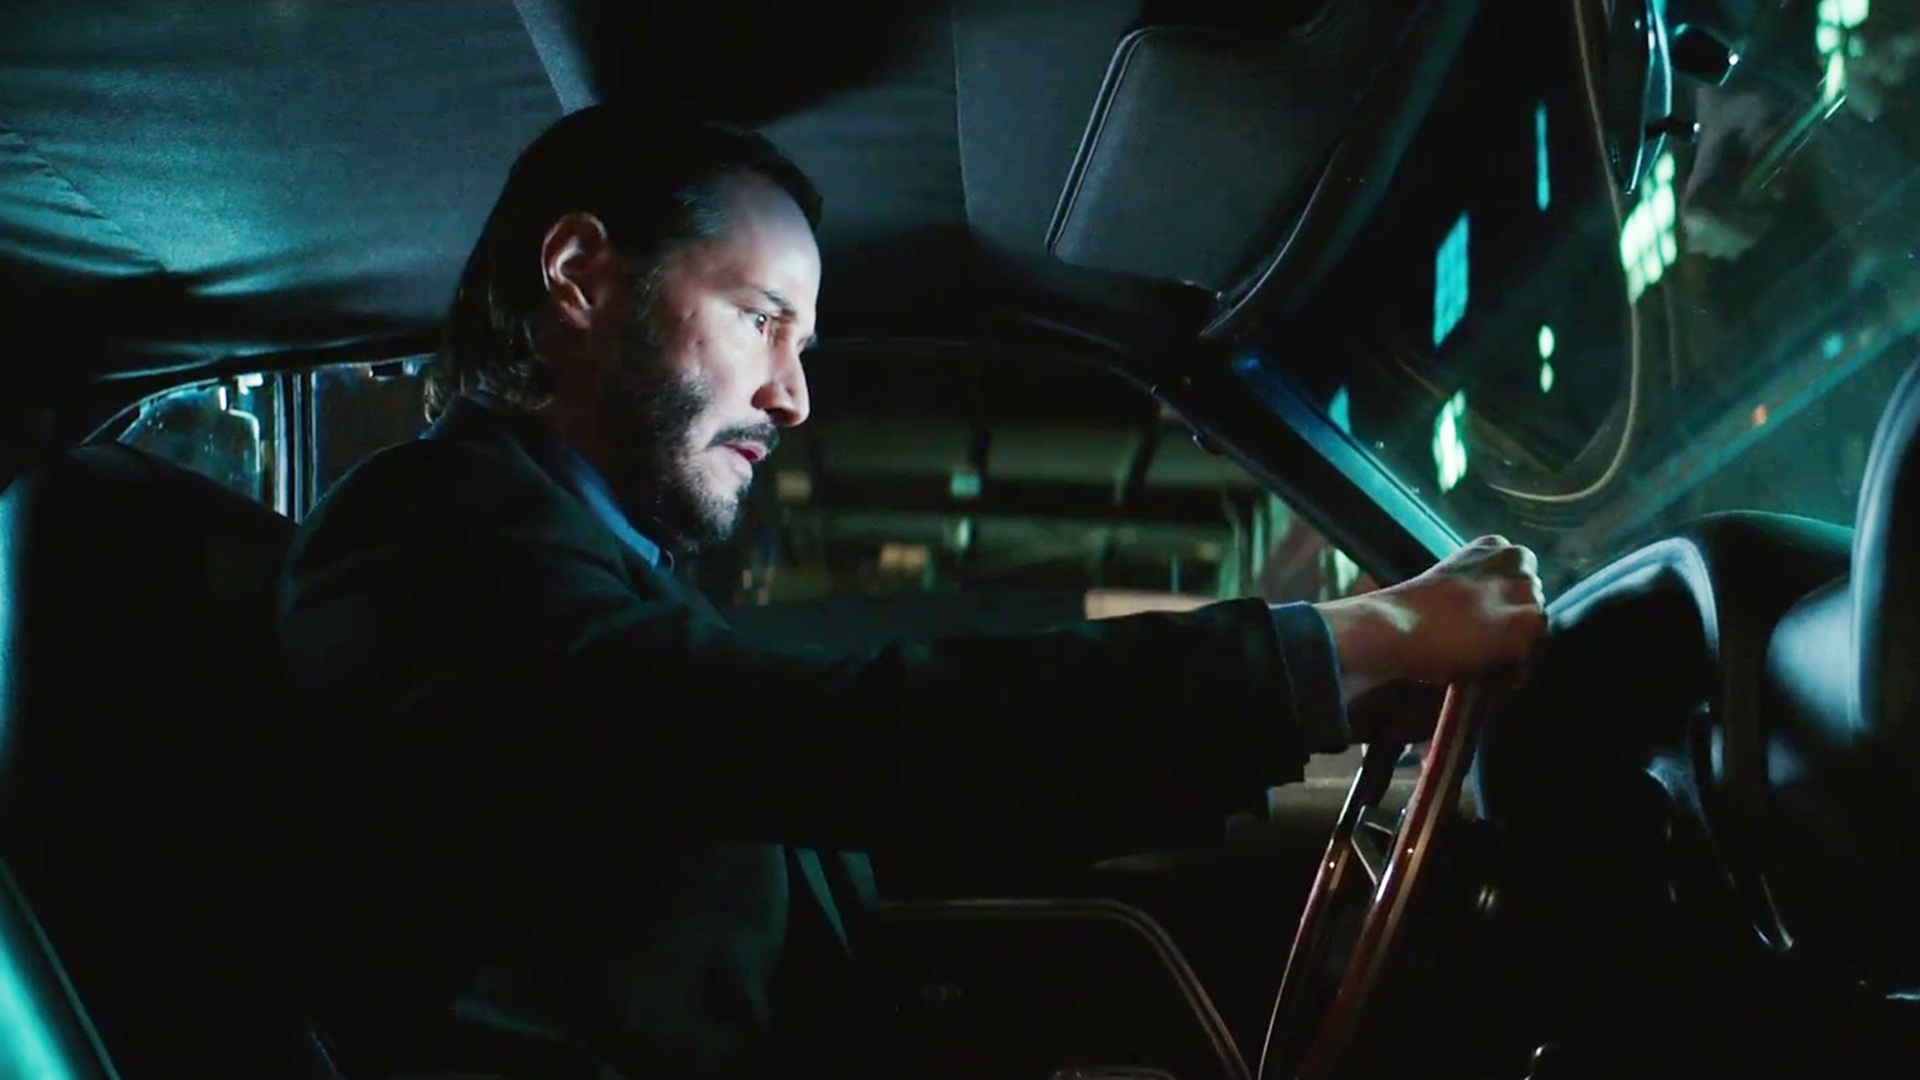 john wick the movie - photo #7